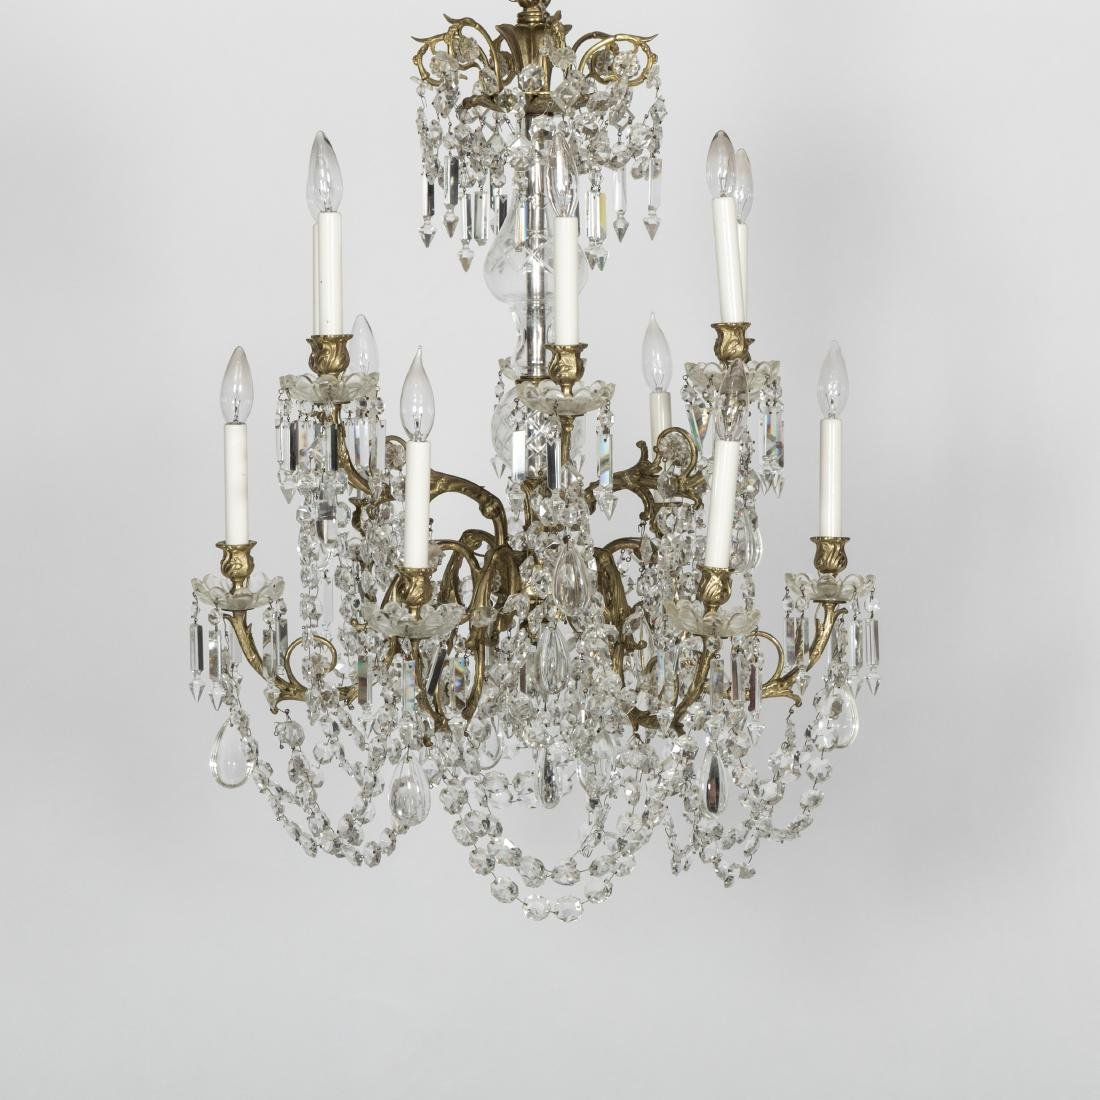 Twelve Arm French Style Chandelier